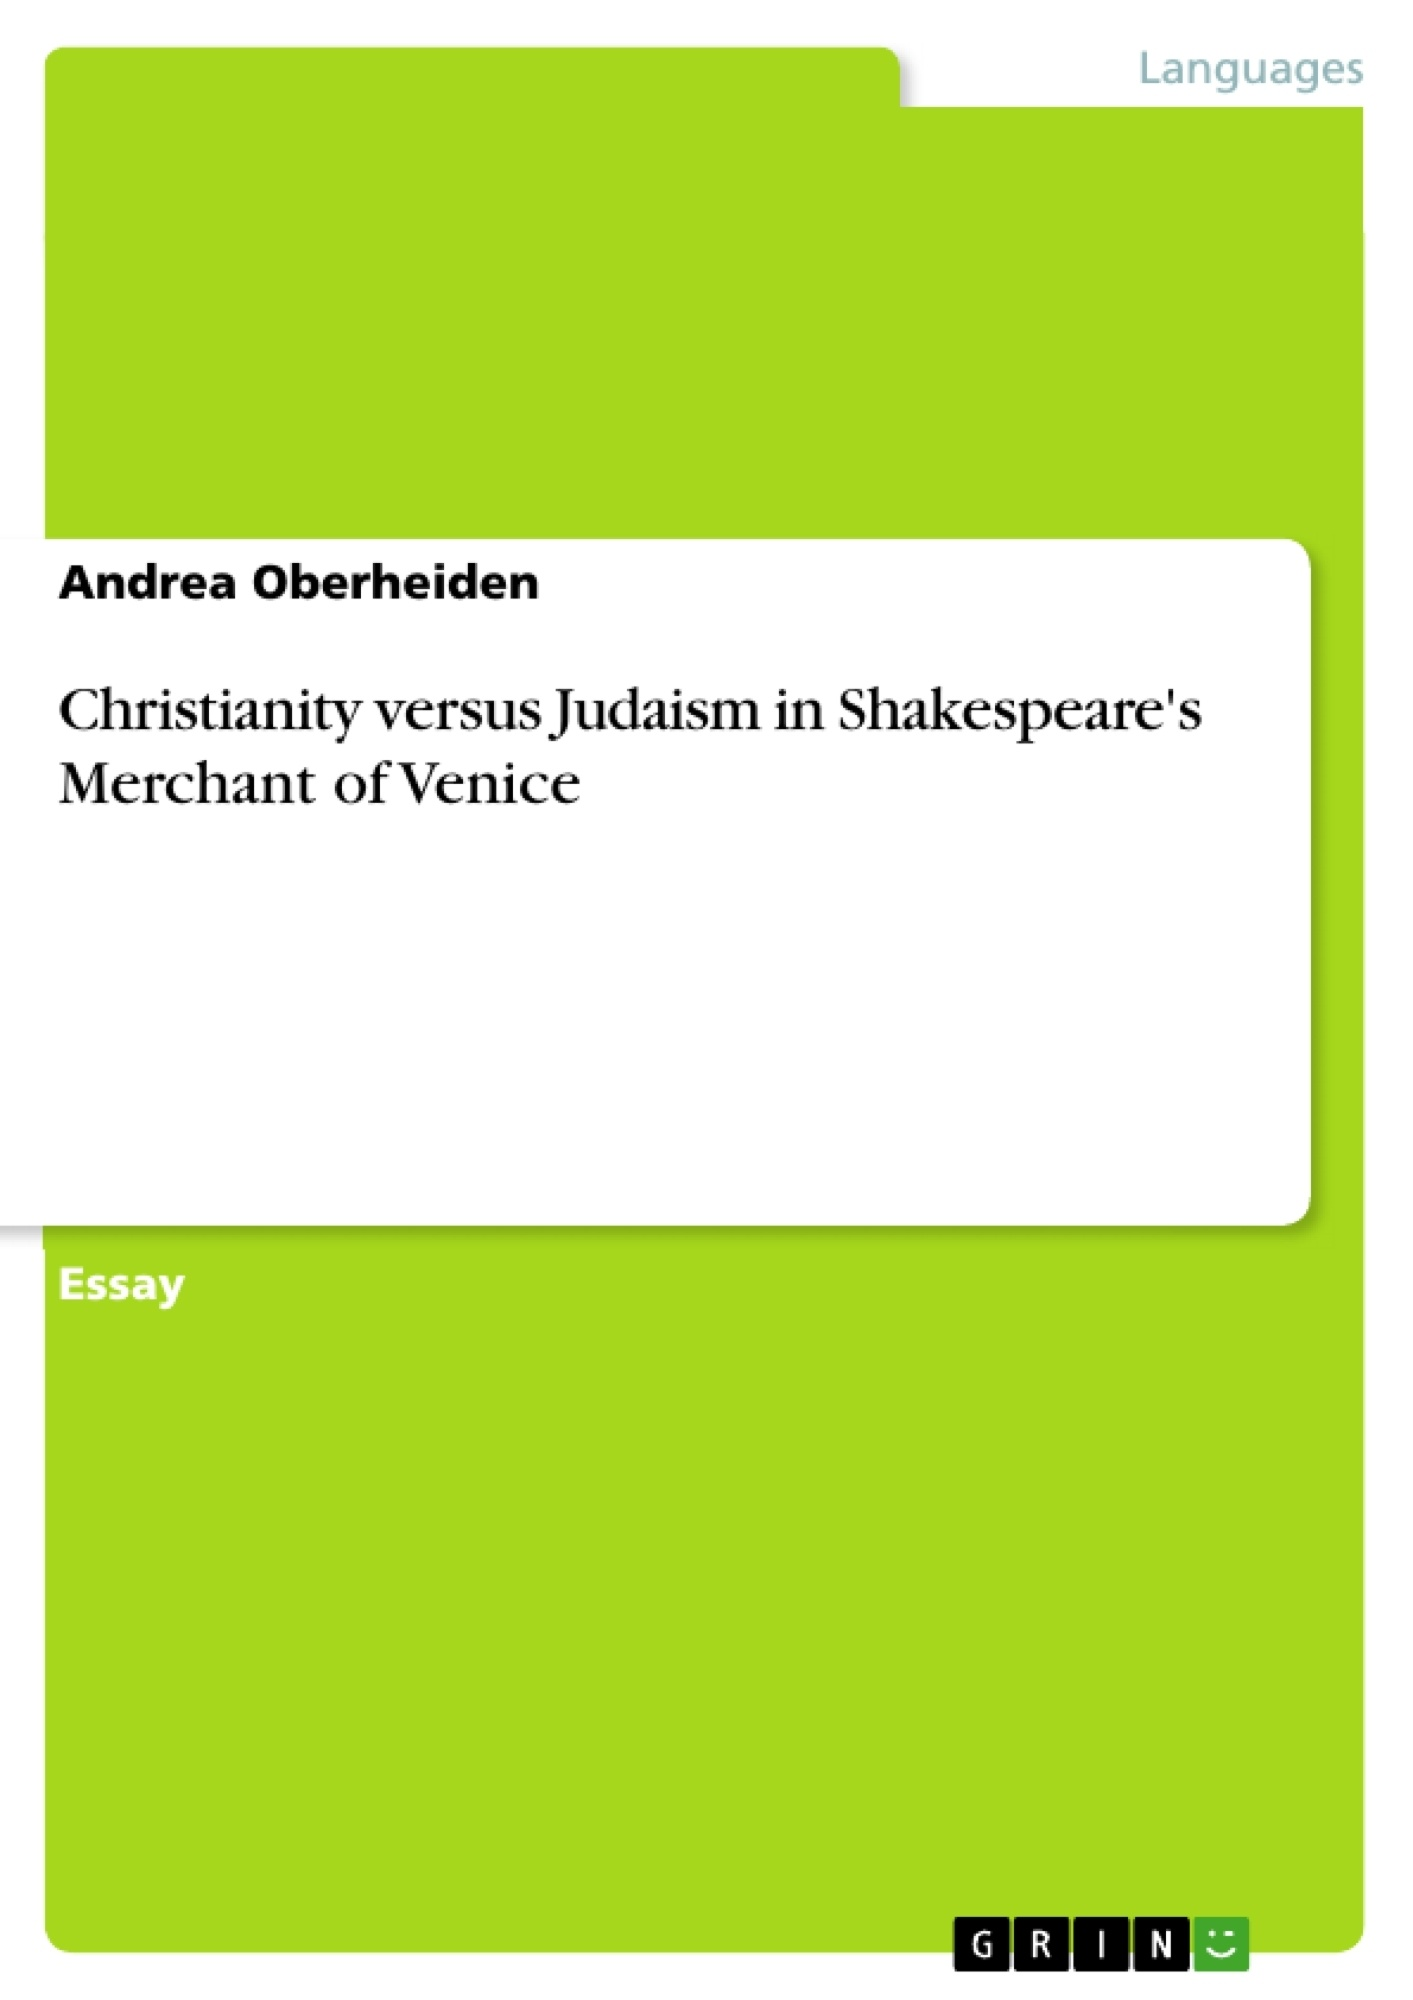 christianity versus judaism in shakespeare s merchant of venice christianity versus judaism in shakespeare s merchant of venice publish your master s thesis bachelor s thesis essay or term paper